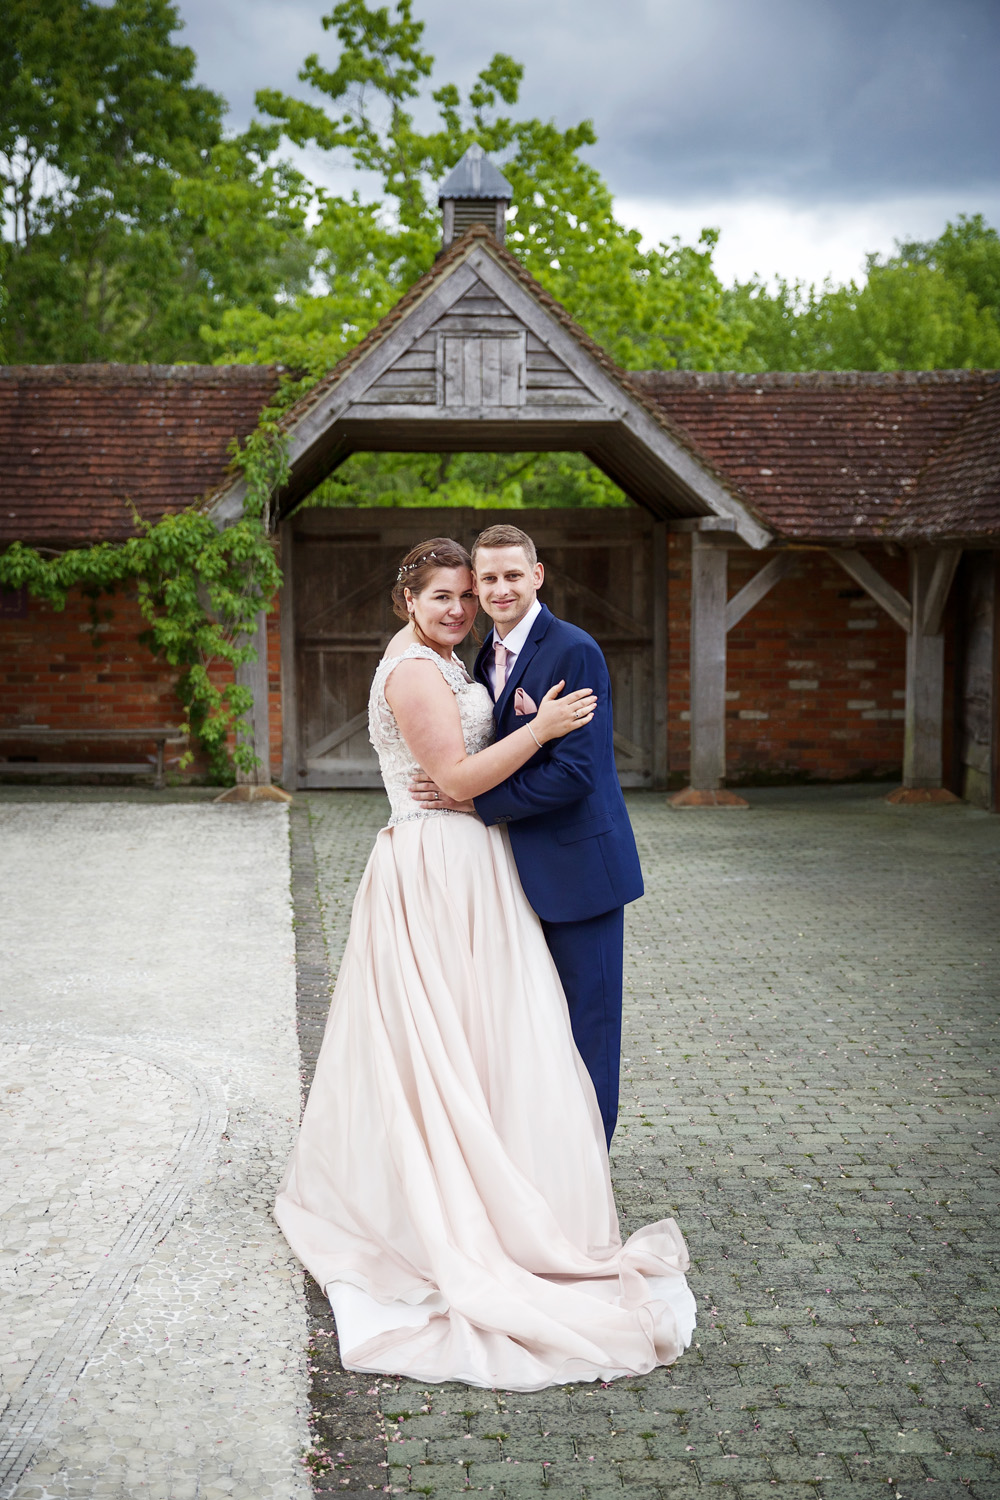 Rivervale_Barn_Wedding_Photographer_Yateley_087.jpg